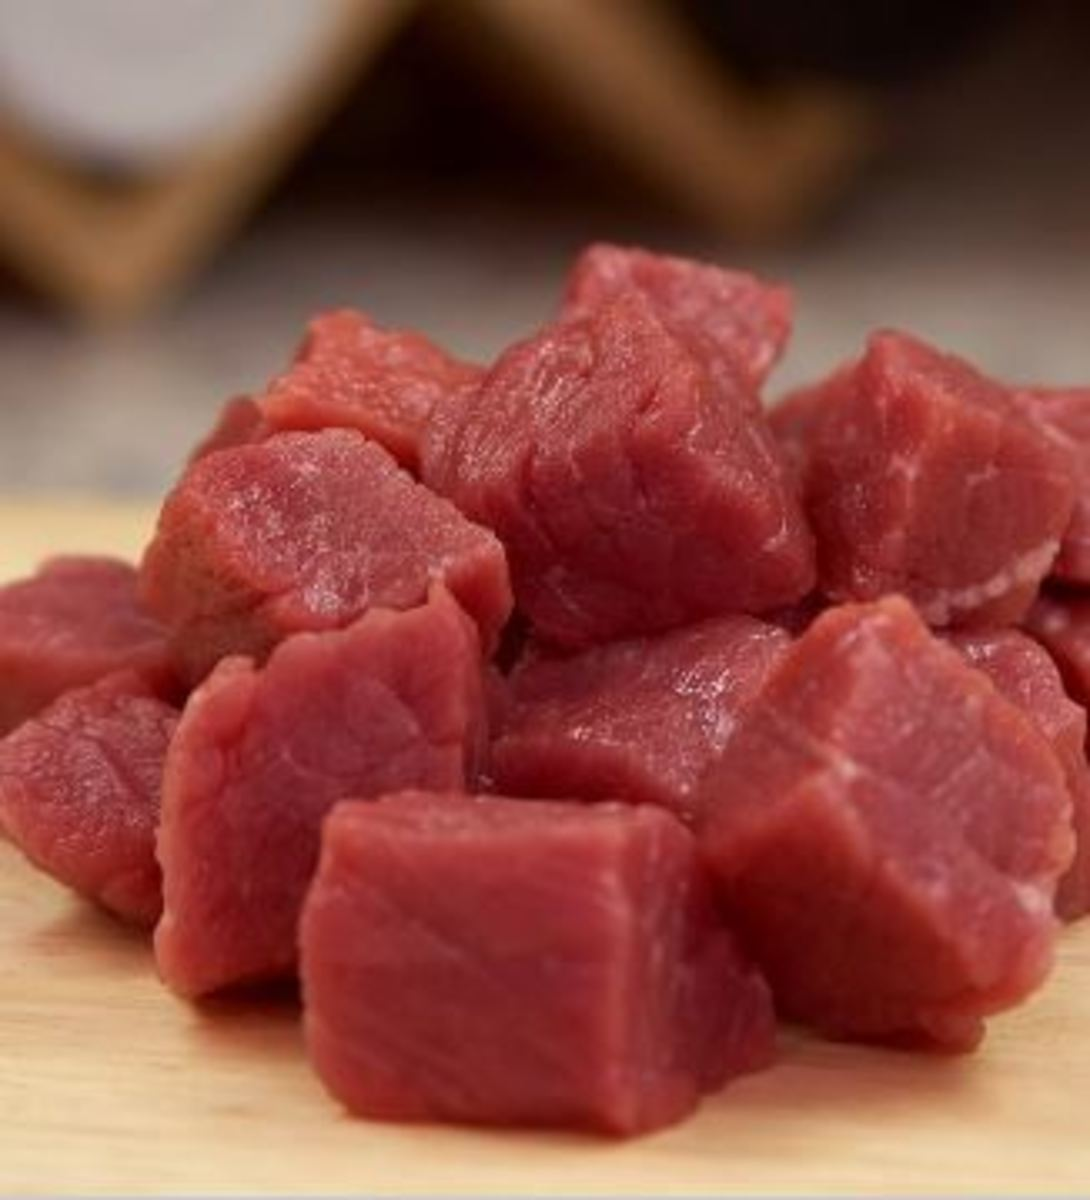 There are several pros and cons of a raw diet for dogs.